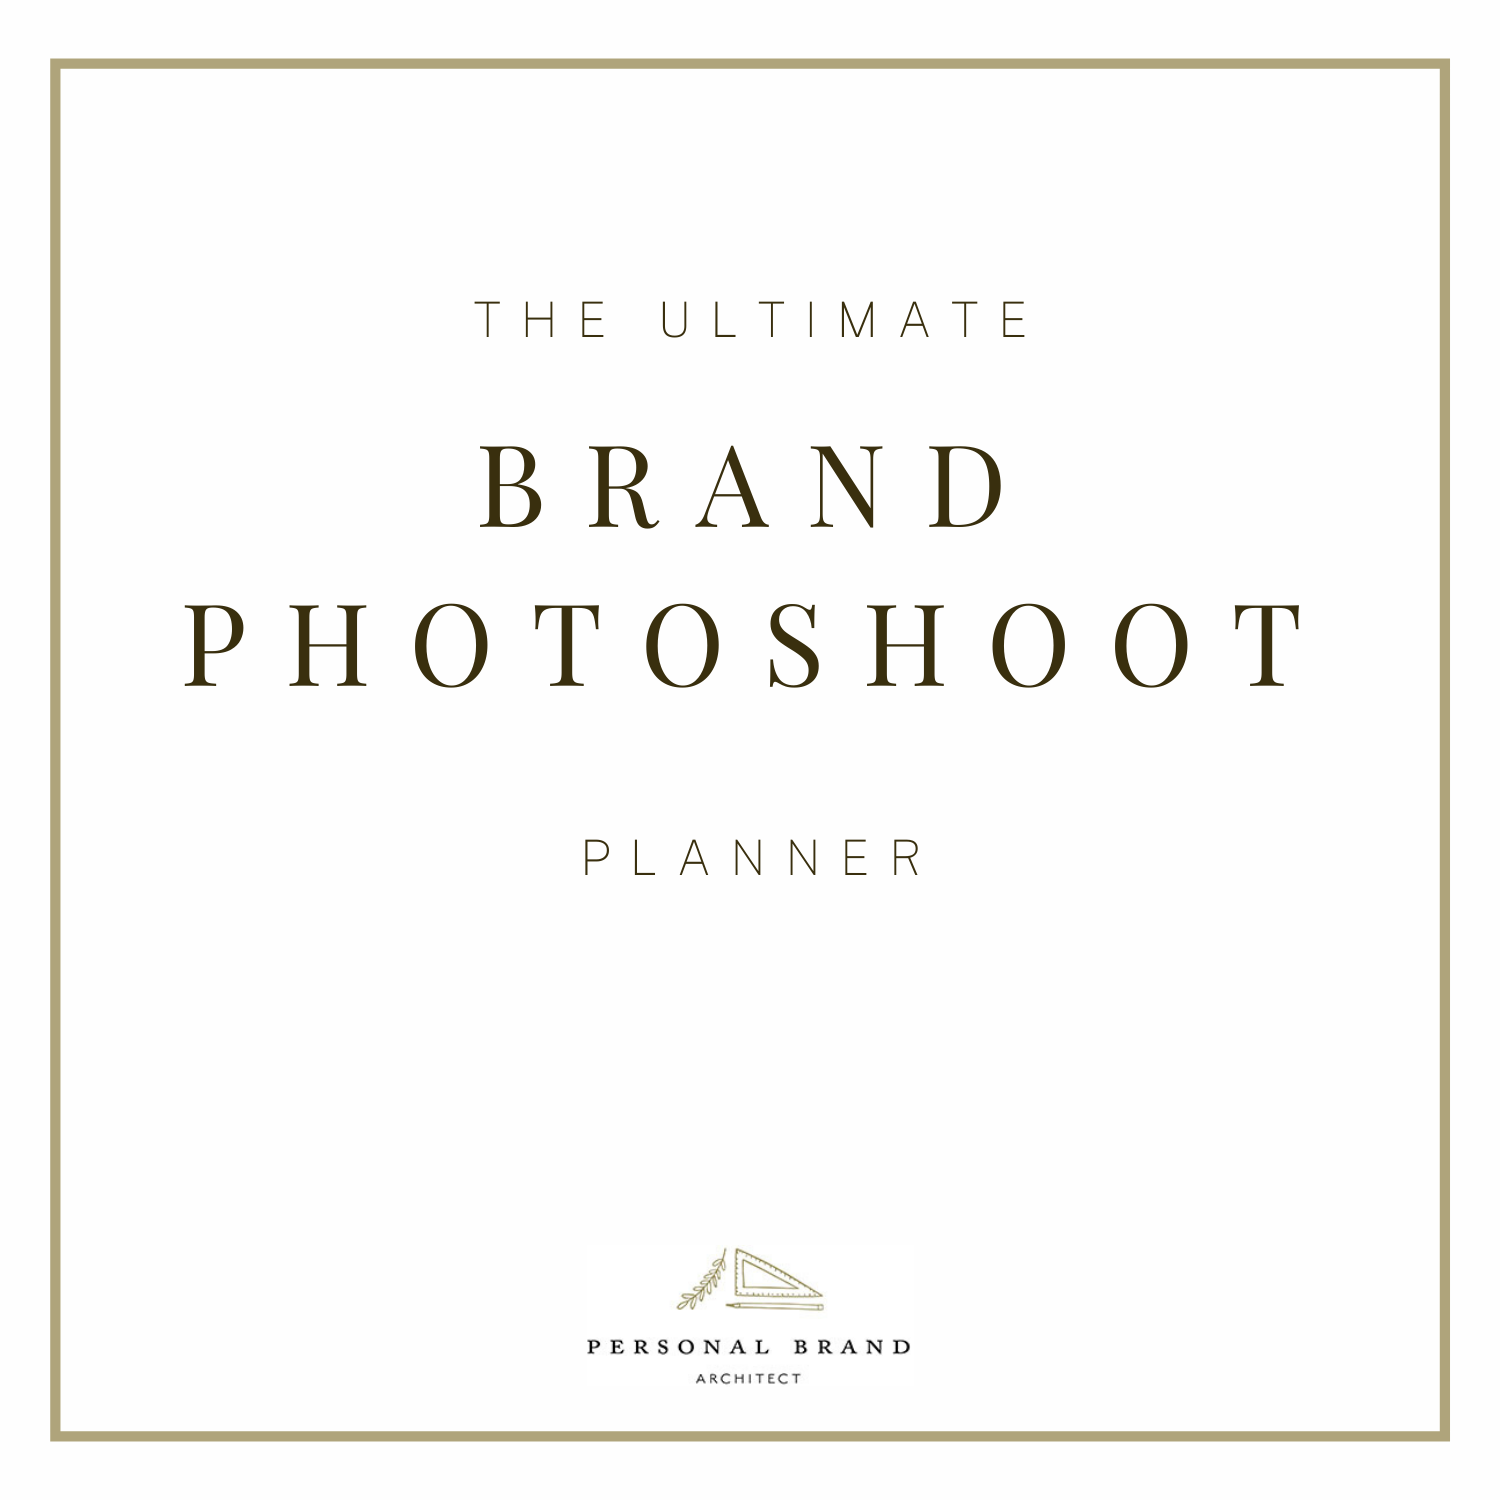 download button for the brand photoshoot planner